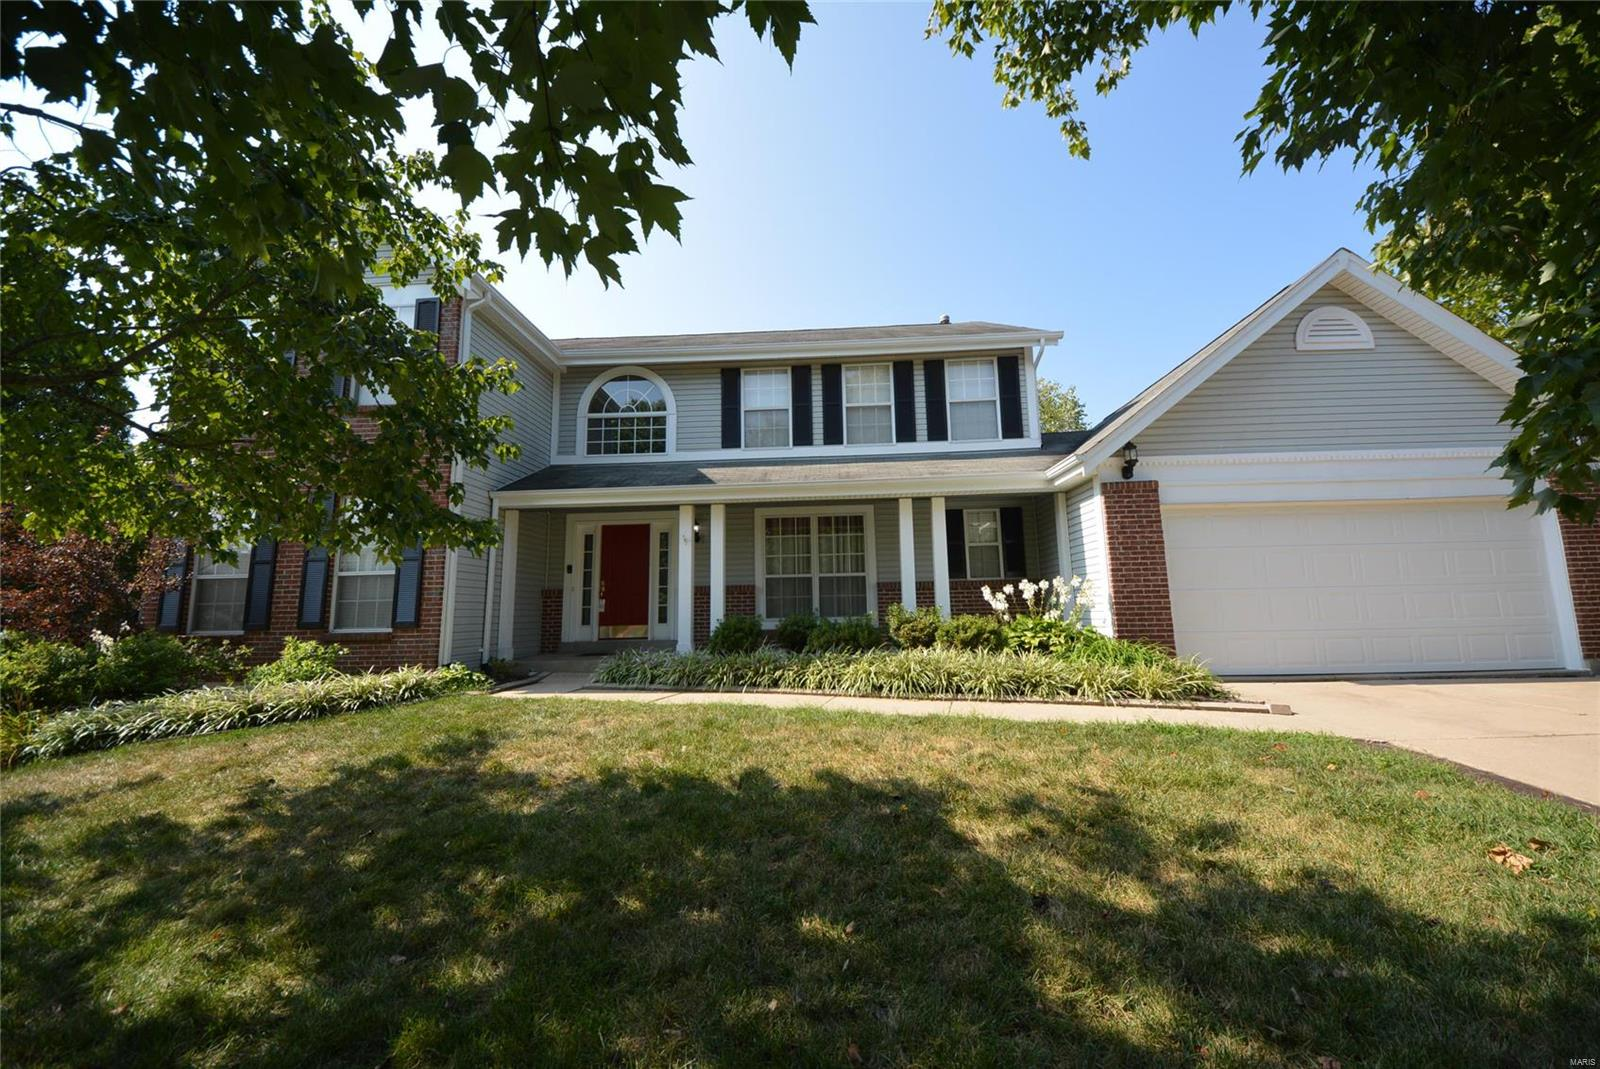 Beautiful, MOVE-IN-READY 4BR, 4BTH 2sty w/3880+SF of living space! Nestled in the heart of O'Fallon this home is loaded with curb appeal with vinyl front w/brick accents, covered porch, lush landscaping & 2 car garage. Welcoming entry foyer leads to the living rm & elegant dining rm. The spacious family rm features a gas fireplace & LG bay window. The LG kitchen w/hardwood floors offers a center island, tile backsplash, stylish black appliances (all included), work station, pantry & bkft rm w/bay window & slider to the refinished deck looking out to the lvl fenced yard perfect for outdoor enjoyment. Powder rm & laundry complete the main. The upper lvl offers the master suite w/vaulted ceilings, walk in closet & private full bth w/dbl vanity, soaking tub & sept shower. 3 add'l BR & full bth complete the upper lvl. The finished LL provides a LG family rm w/built-ins, den, sitting rm, add'l possibly sleeping rm & half bth. Great location w/easy access to major highways & great schools.